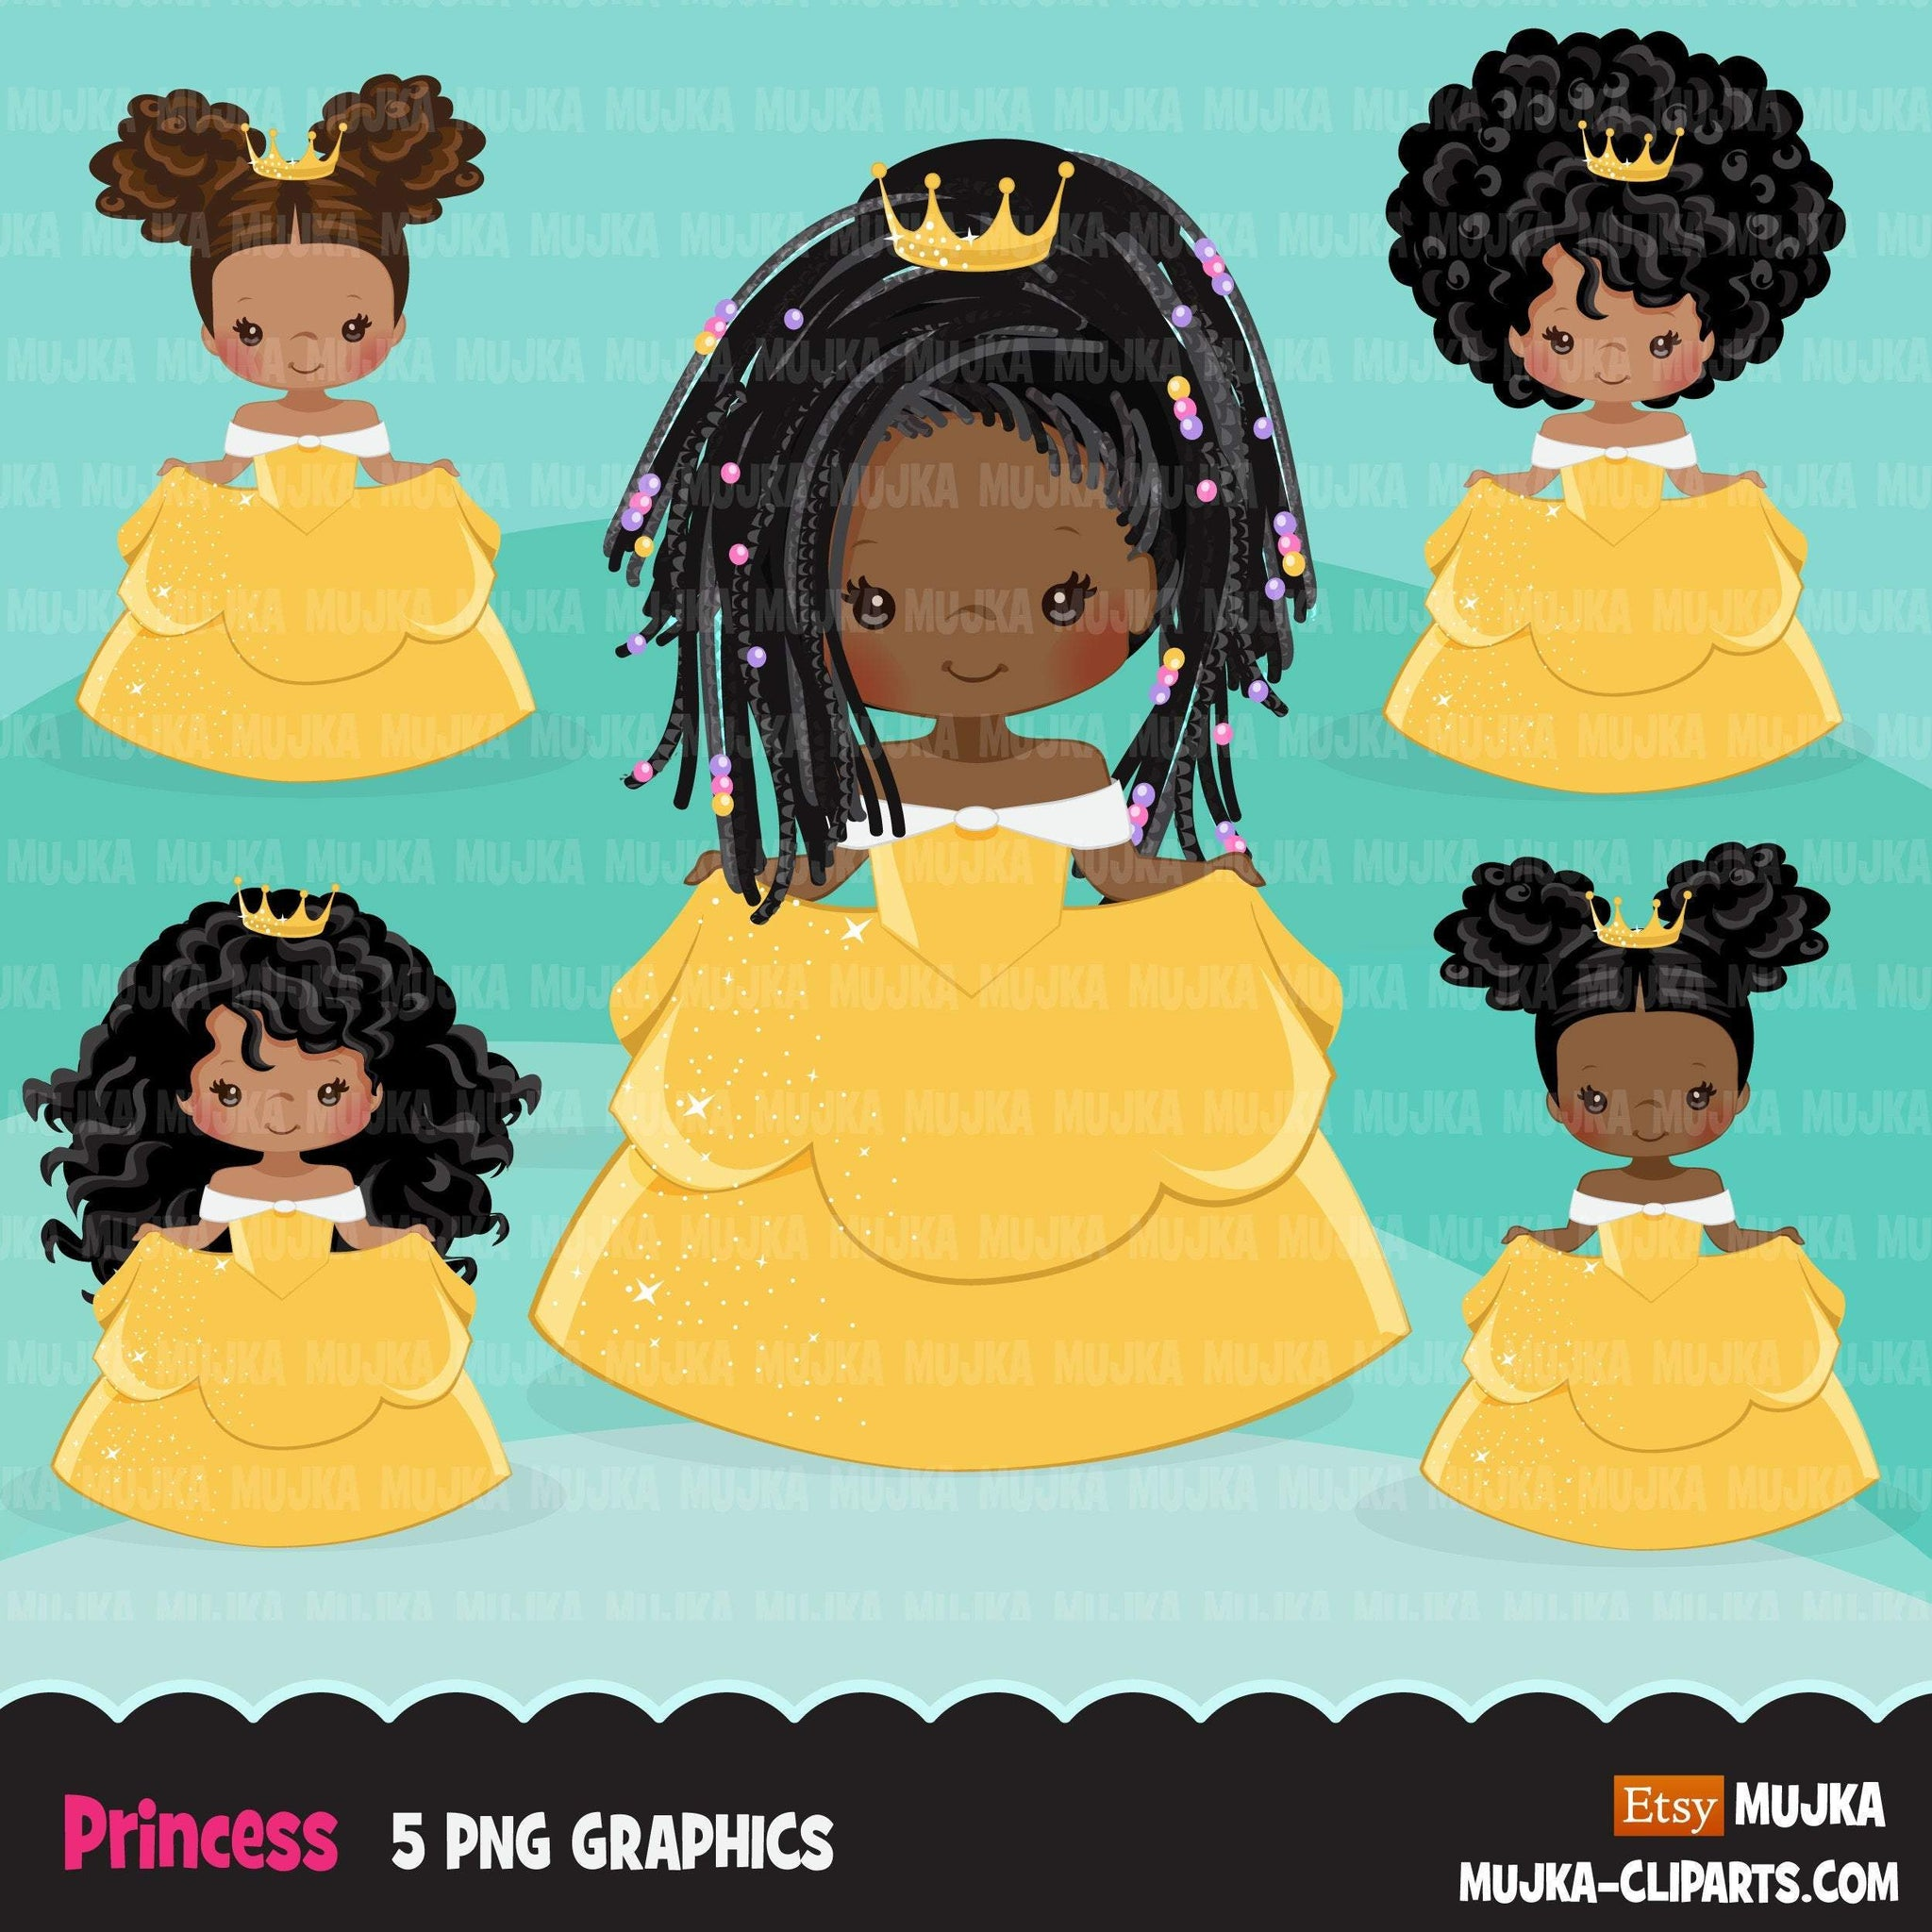 Black Princess clipart, fairy tale graphics, girls story book, yellow princess dress, commercial use clip art